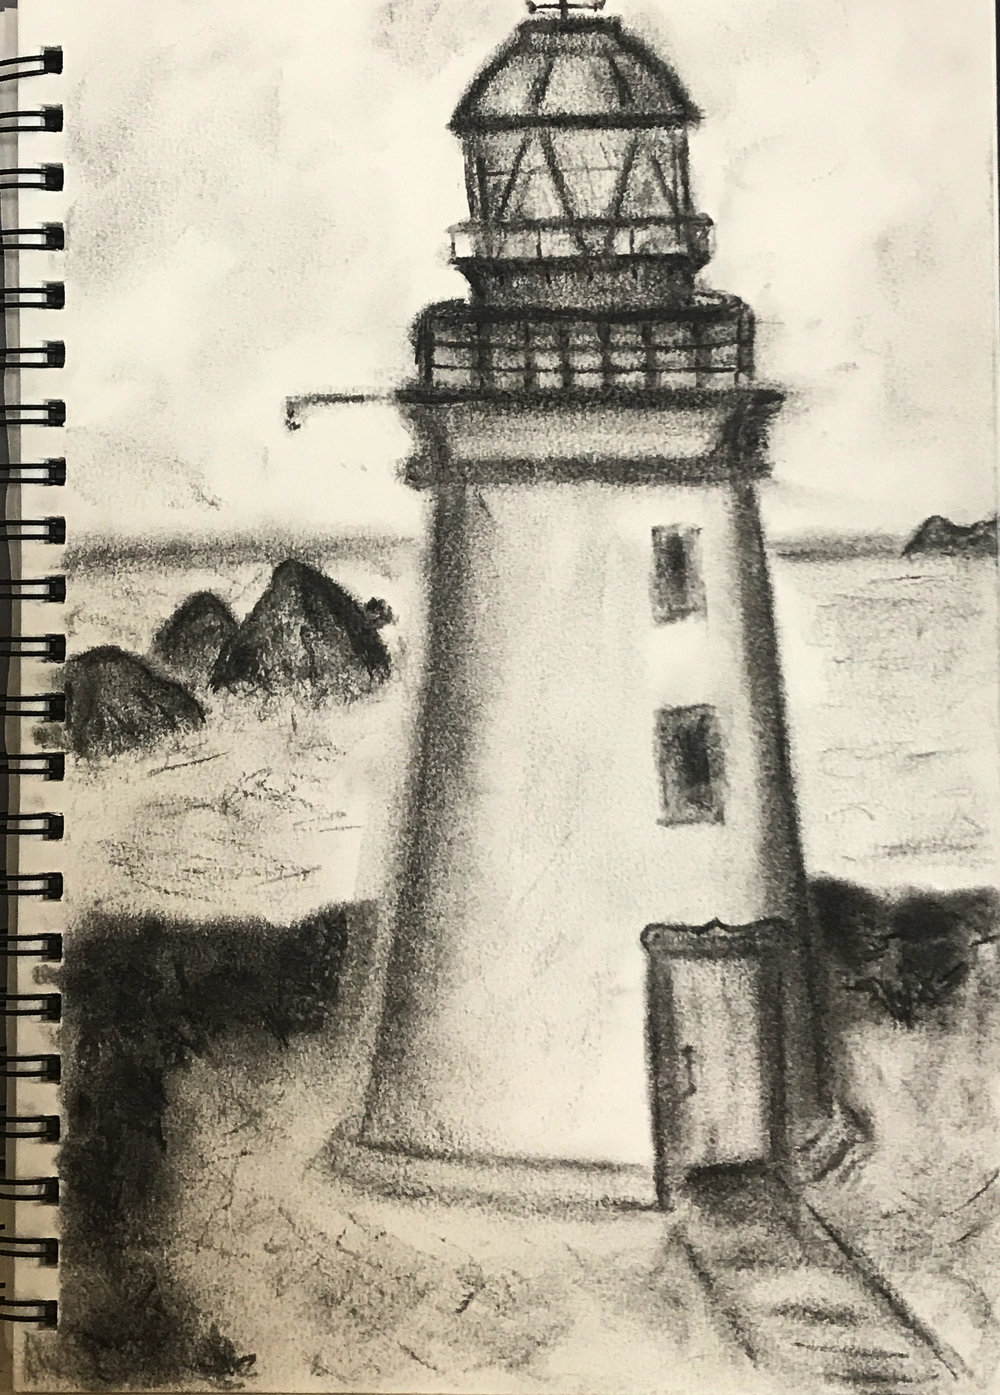 Taylor's drawing of the lighthouse